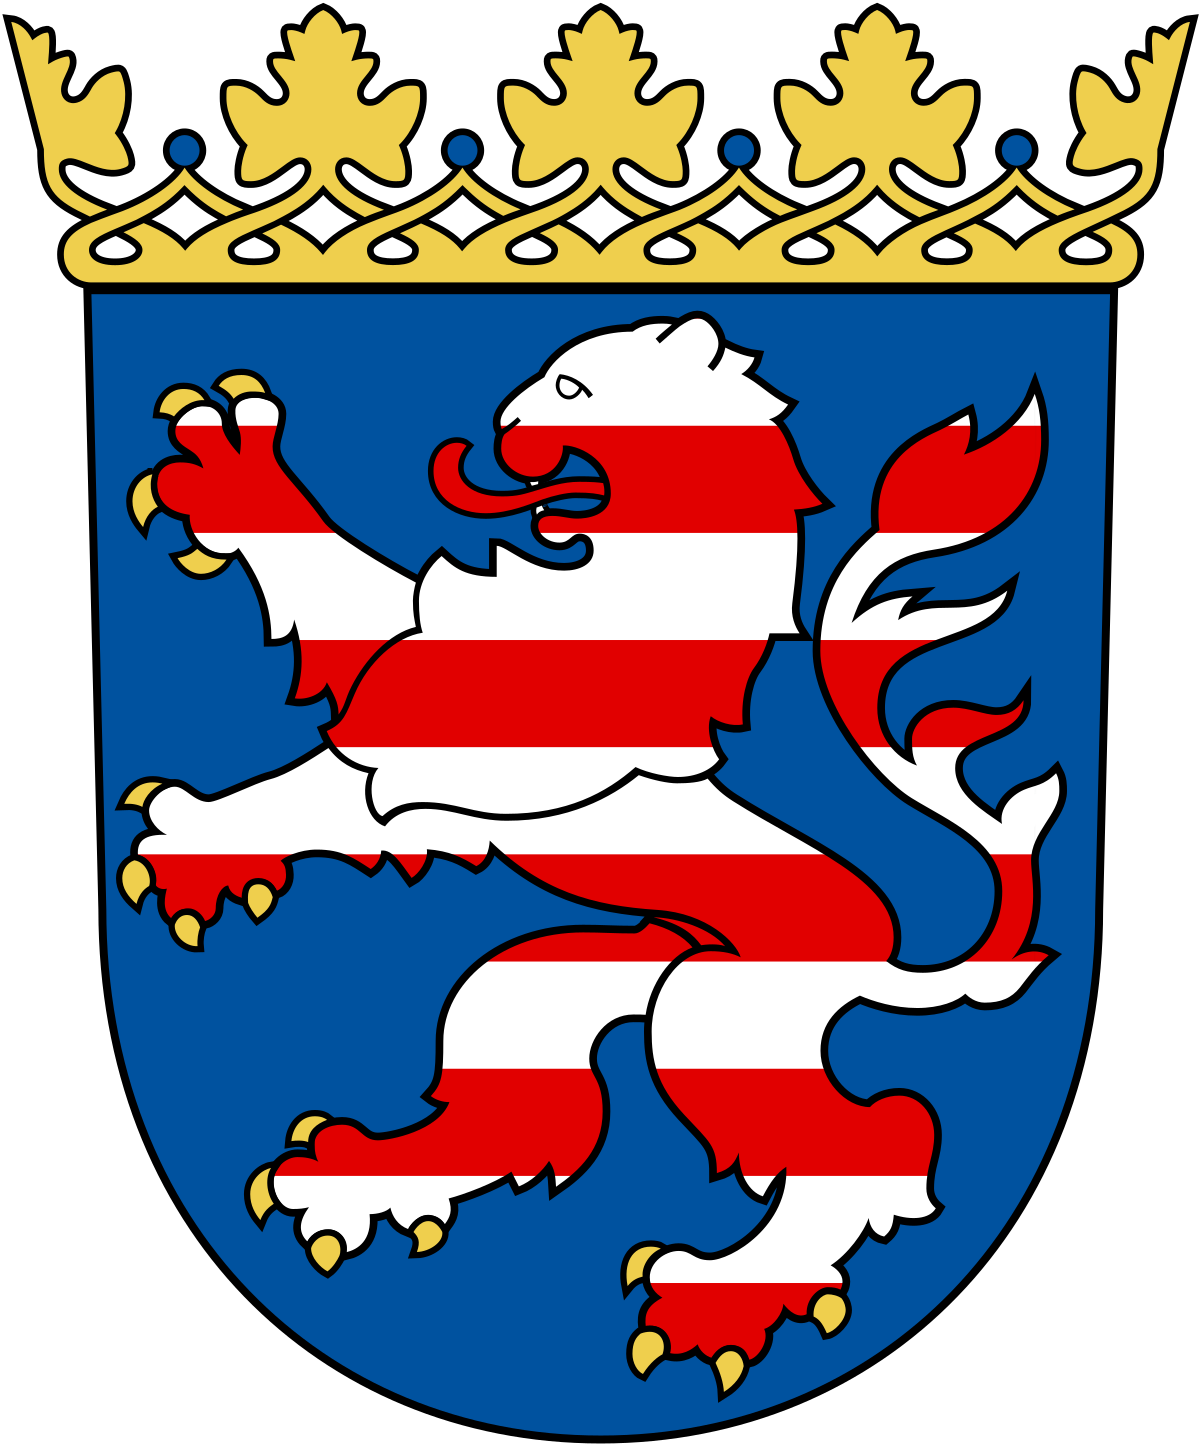 Coat Of Arms Of Hesse Png - Coat of arms of Hesse - Wikipedia